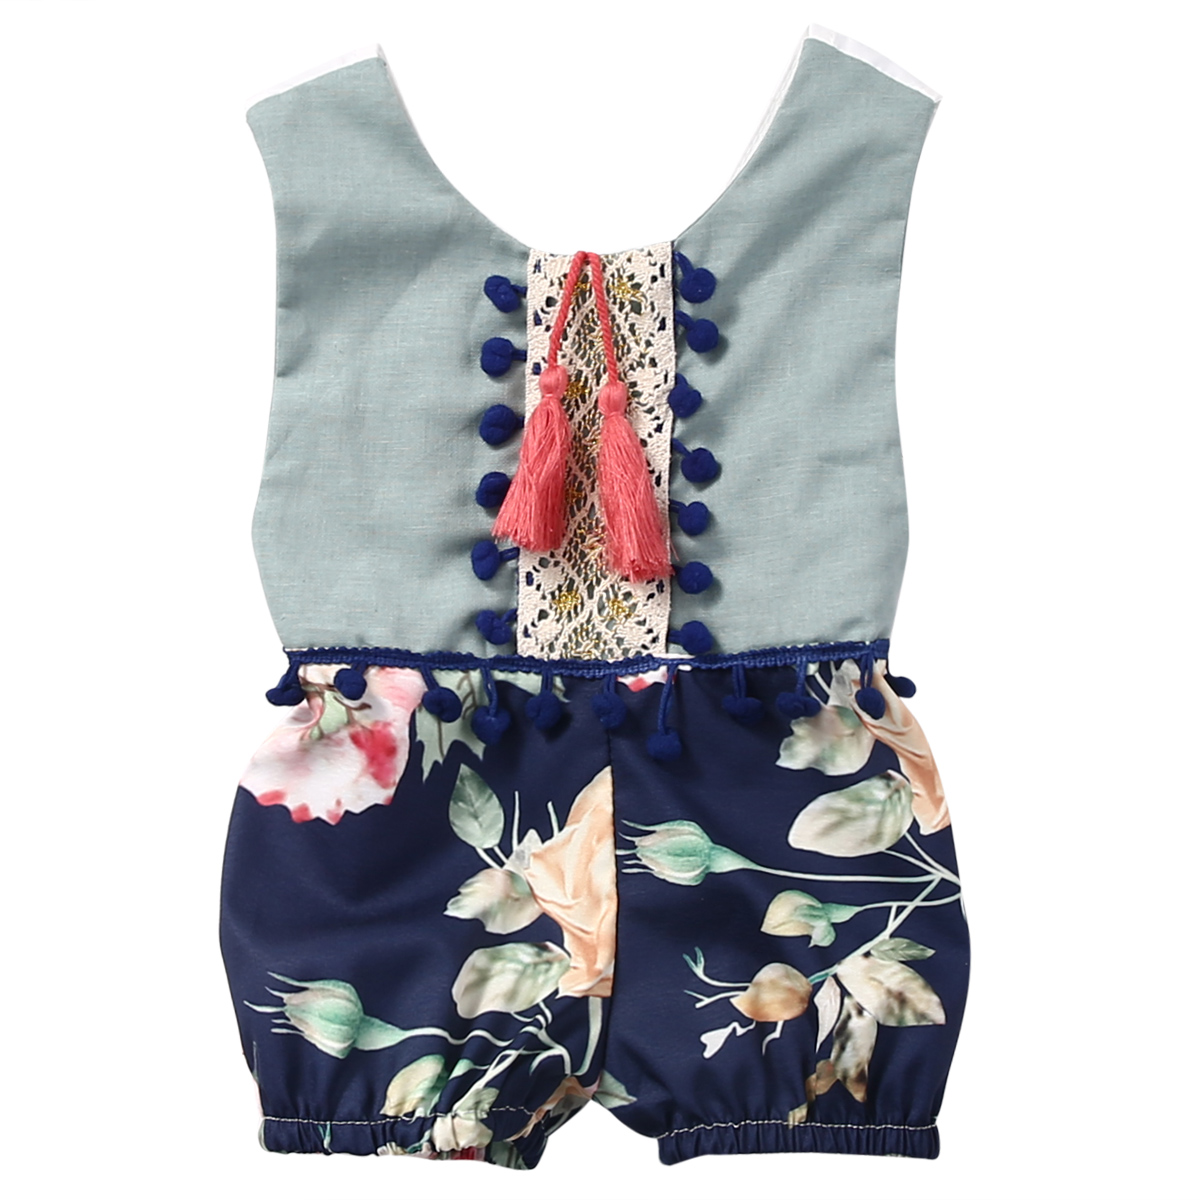 0-4Y Toddler Kids Girls Clothes Sleeveless Floral Romper Baby Girl Rompers Playsuit One Pieces Outfit Kids Tracksuit 2017 cotton toddler kids girls clothes sleeveless floral romper baby girl rompers playsuit one pieces outfit kids tracksuit